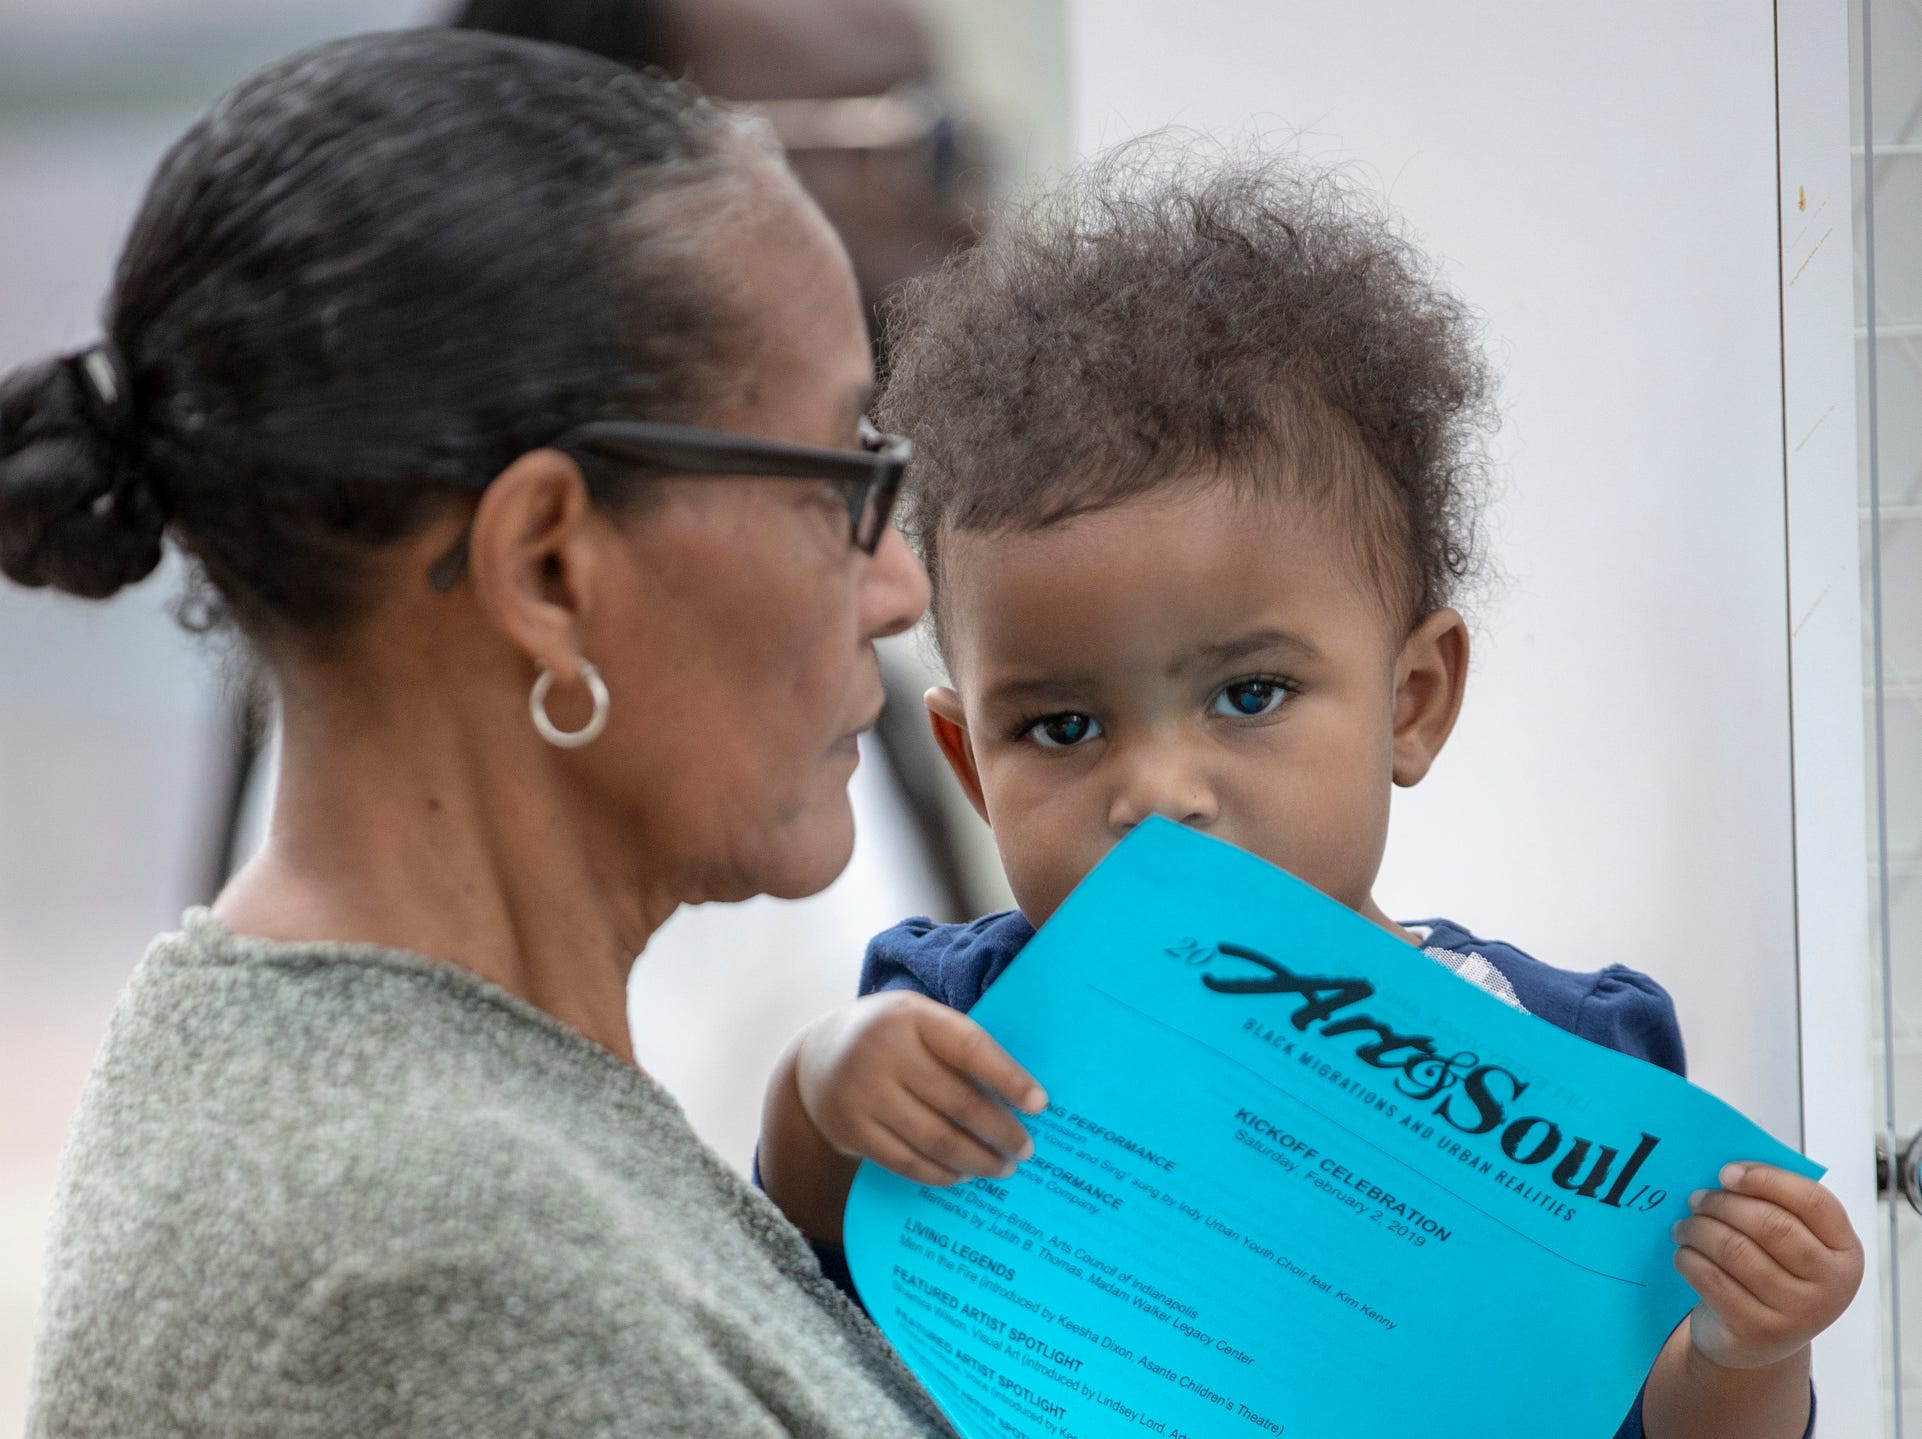 Paulette Dawson holds her granddaughter Madelyn Johnson, 1, both of Indianapolis, at the 2019 Art and Soul kickoff celebration at the Indianapolis Arts Garden, Indianapolis, Saturday, Feb. 2, 2019.